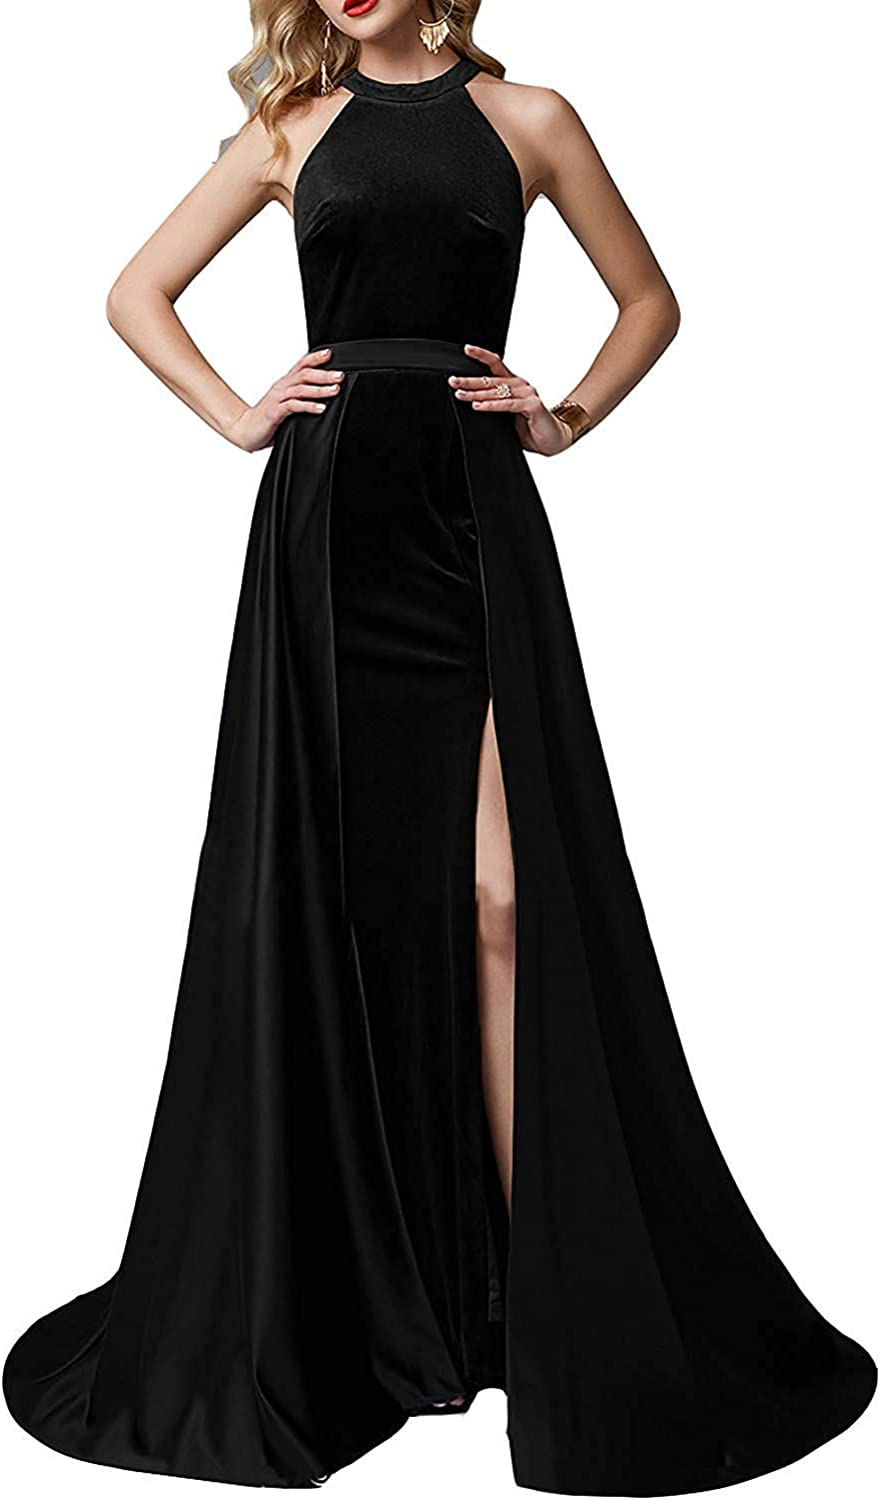 Sulidi Womens Long Halter Mermaid Prom Dresses with Detachable Velvet Train Formal Evening Party Dress C127